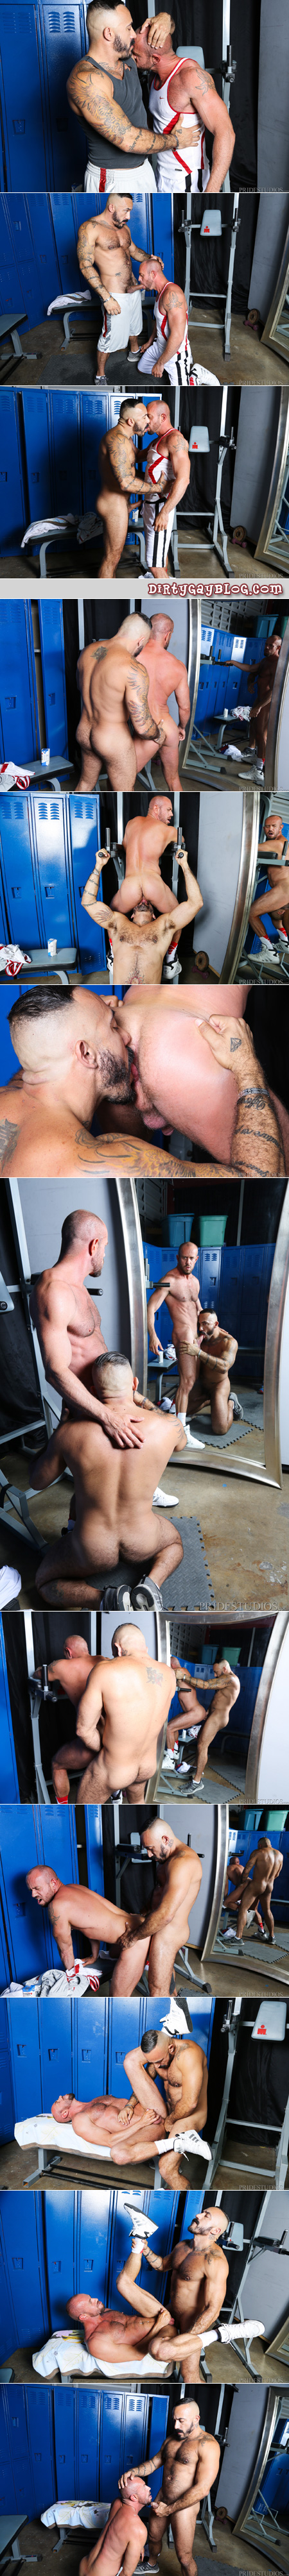 Muscle bears fucking after their workout in the gym locker room.